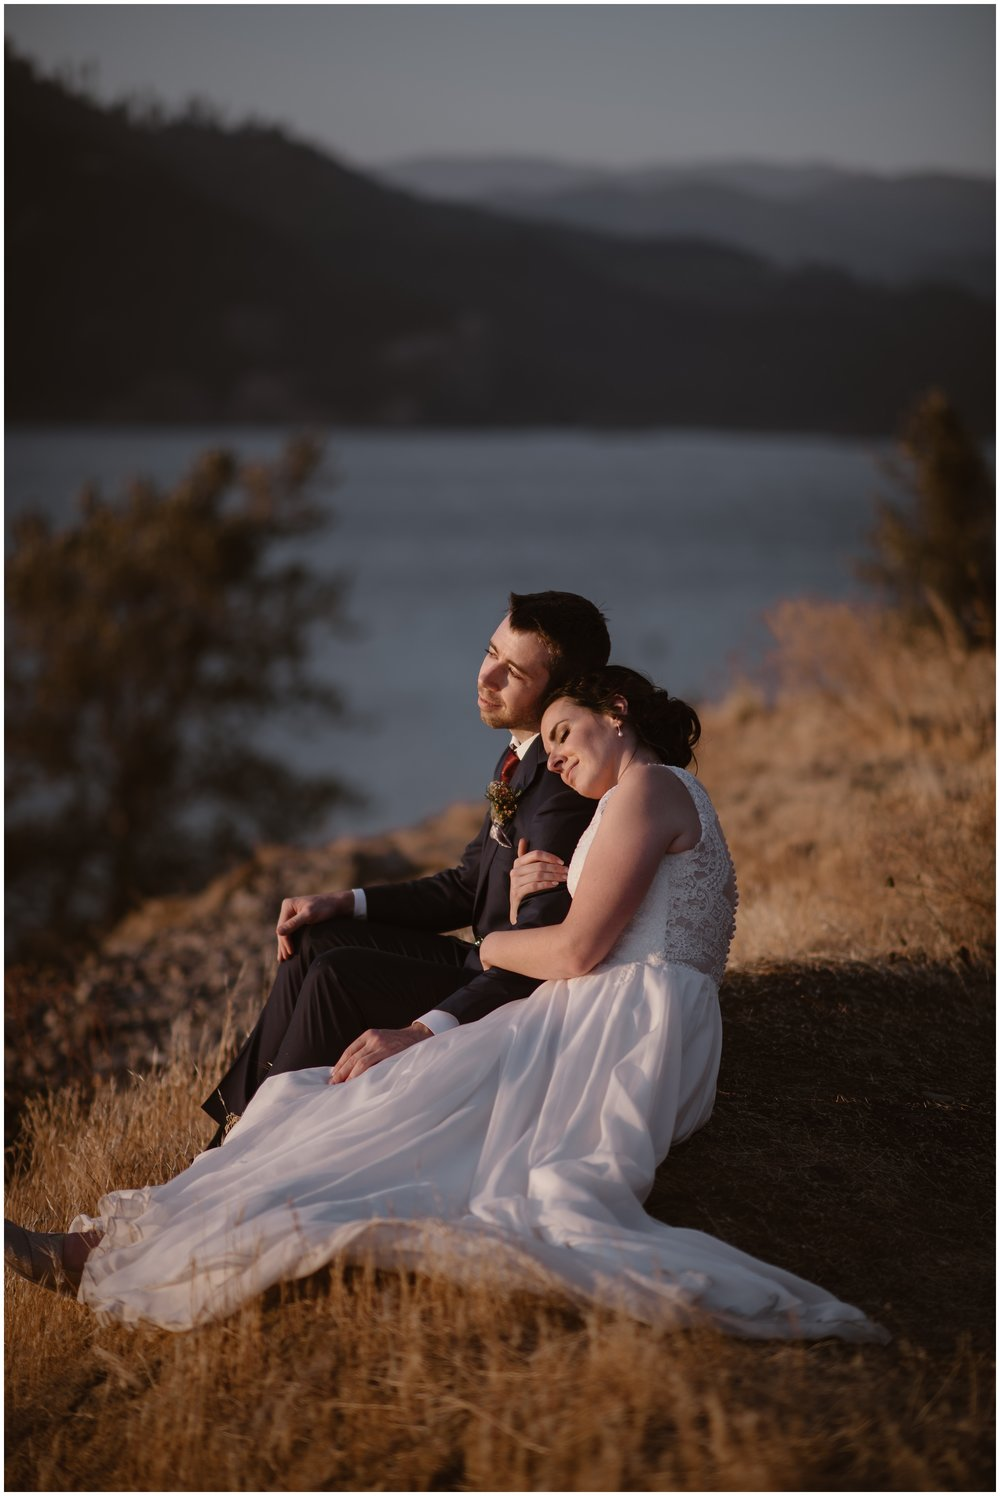 Lauryn and David take a moment to sit down in the golden grass as the sun sets on their elopement ceremony. Behind them, the Columbia River can be seen. The two hold each other close, reflecting on their small simple wedding.